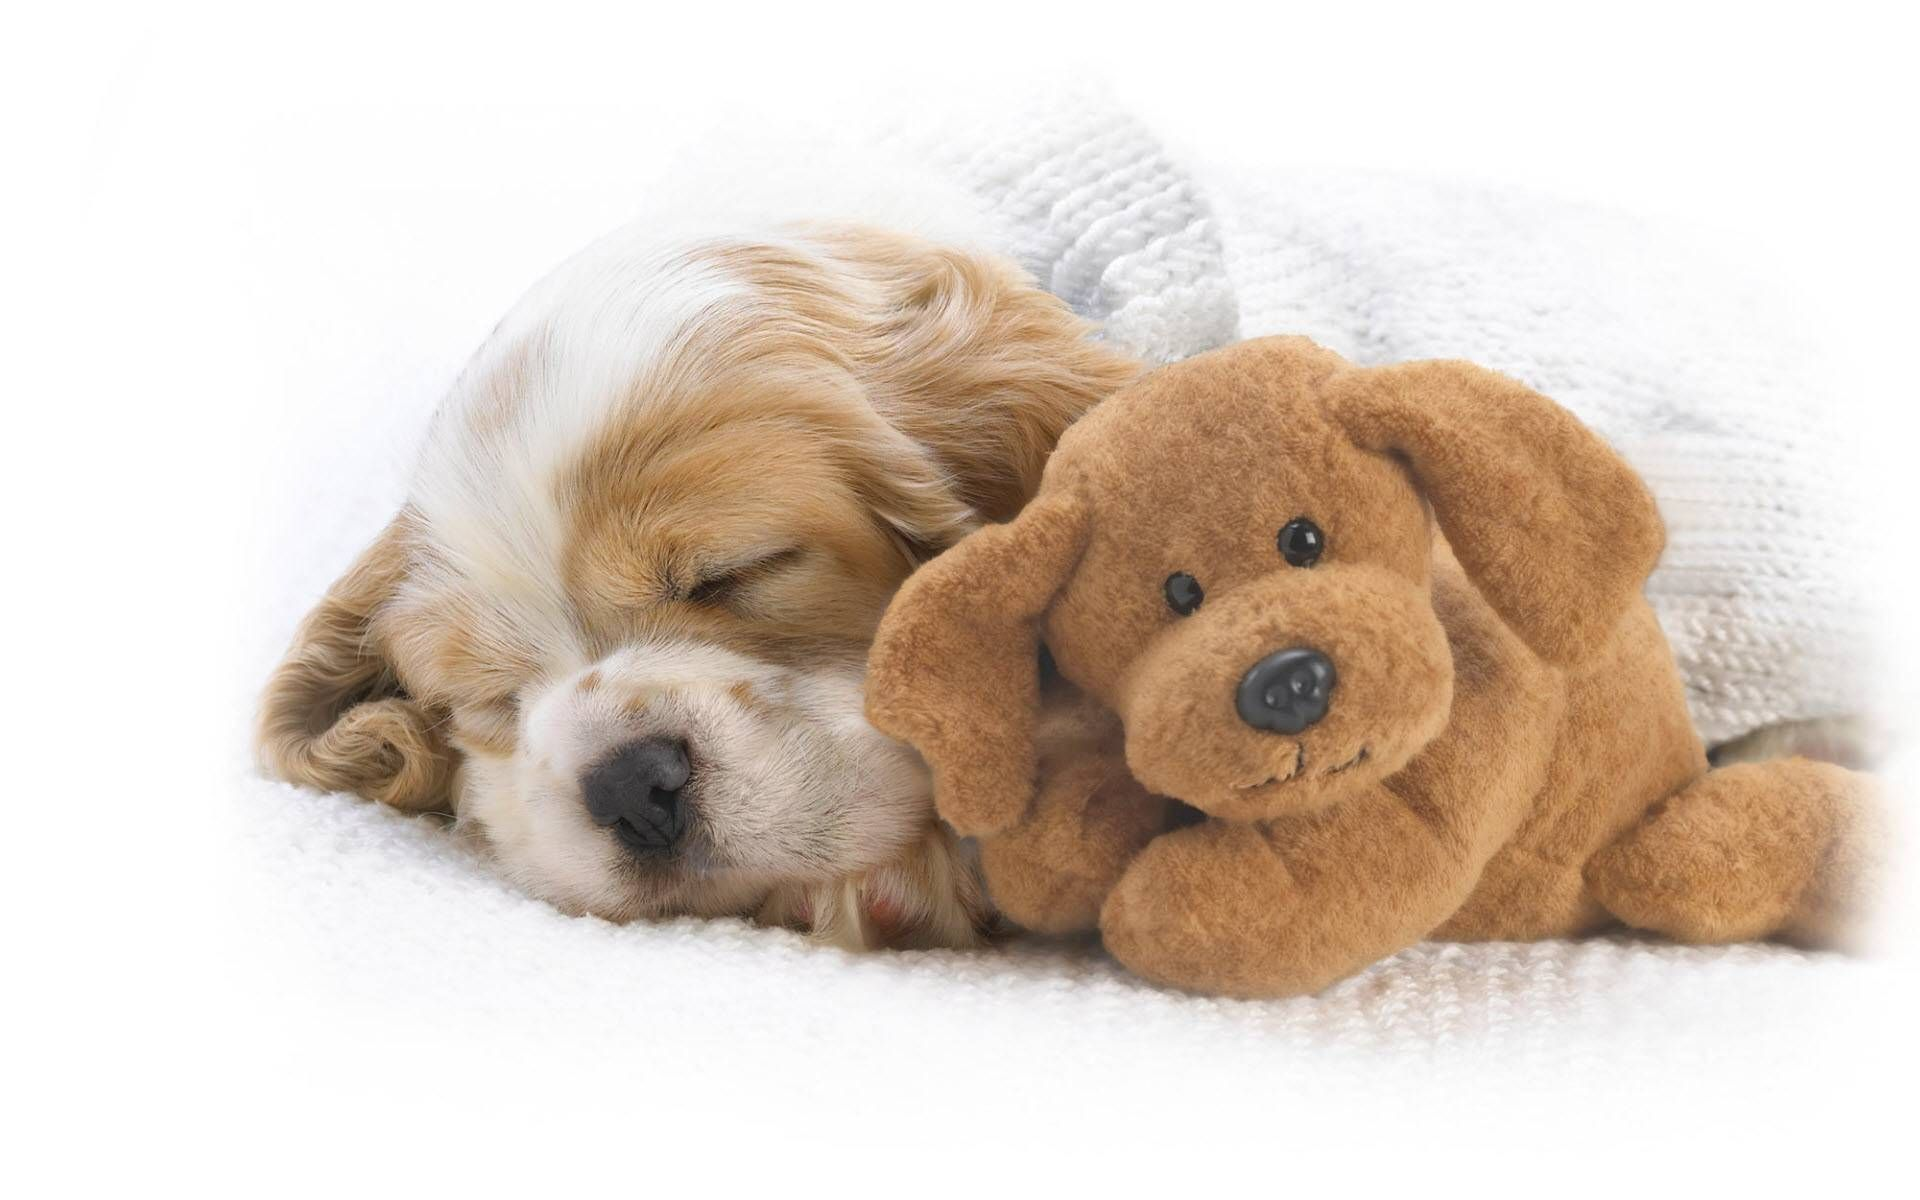 Cute Dogs And Puppies Wallpapers Wallpaper Cave Sleeping Animals Sleeping Puppies Funny Sleeping Animals